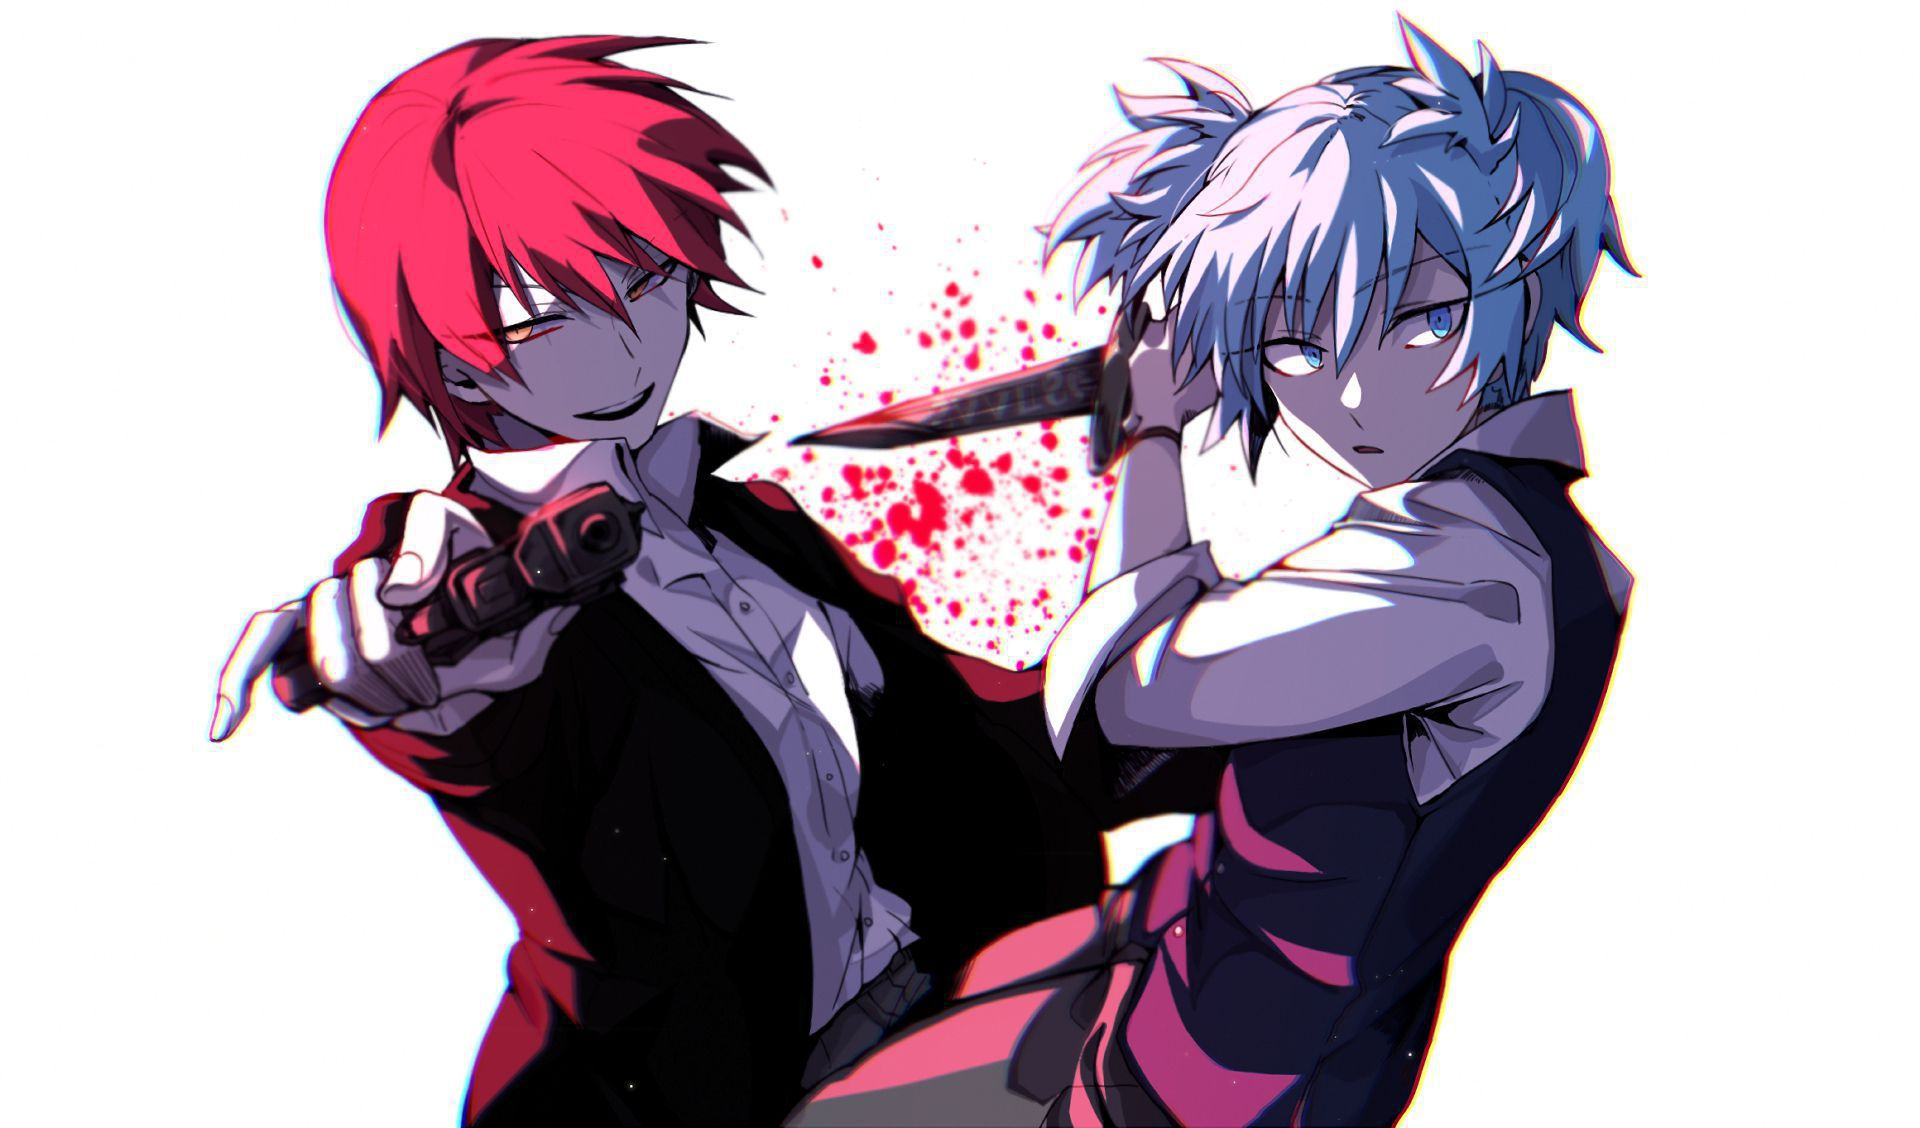 Assassination classroom wallpapers backgrounds - Anime wallpaper assassination classroom ...